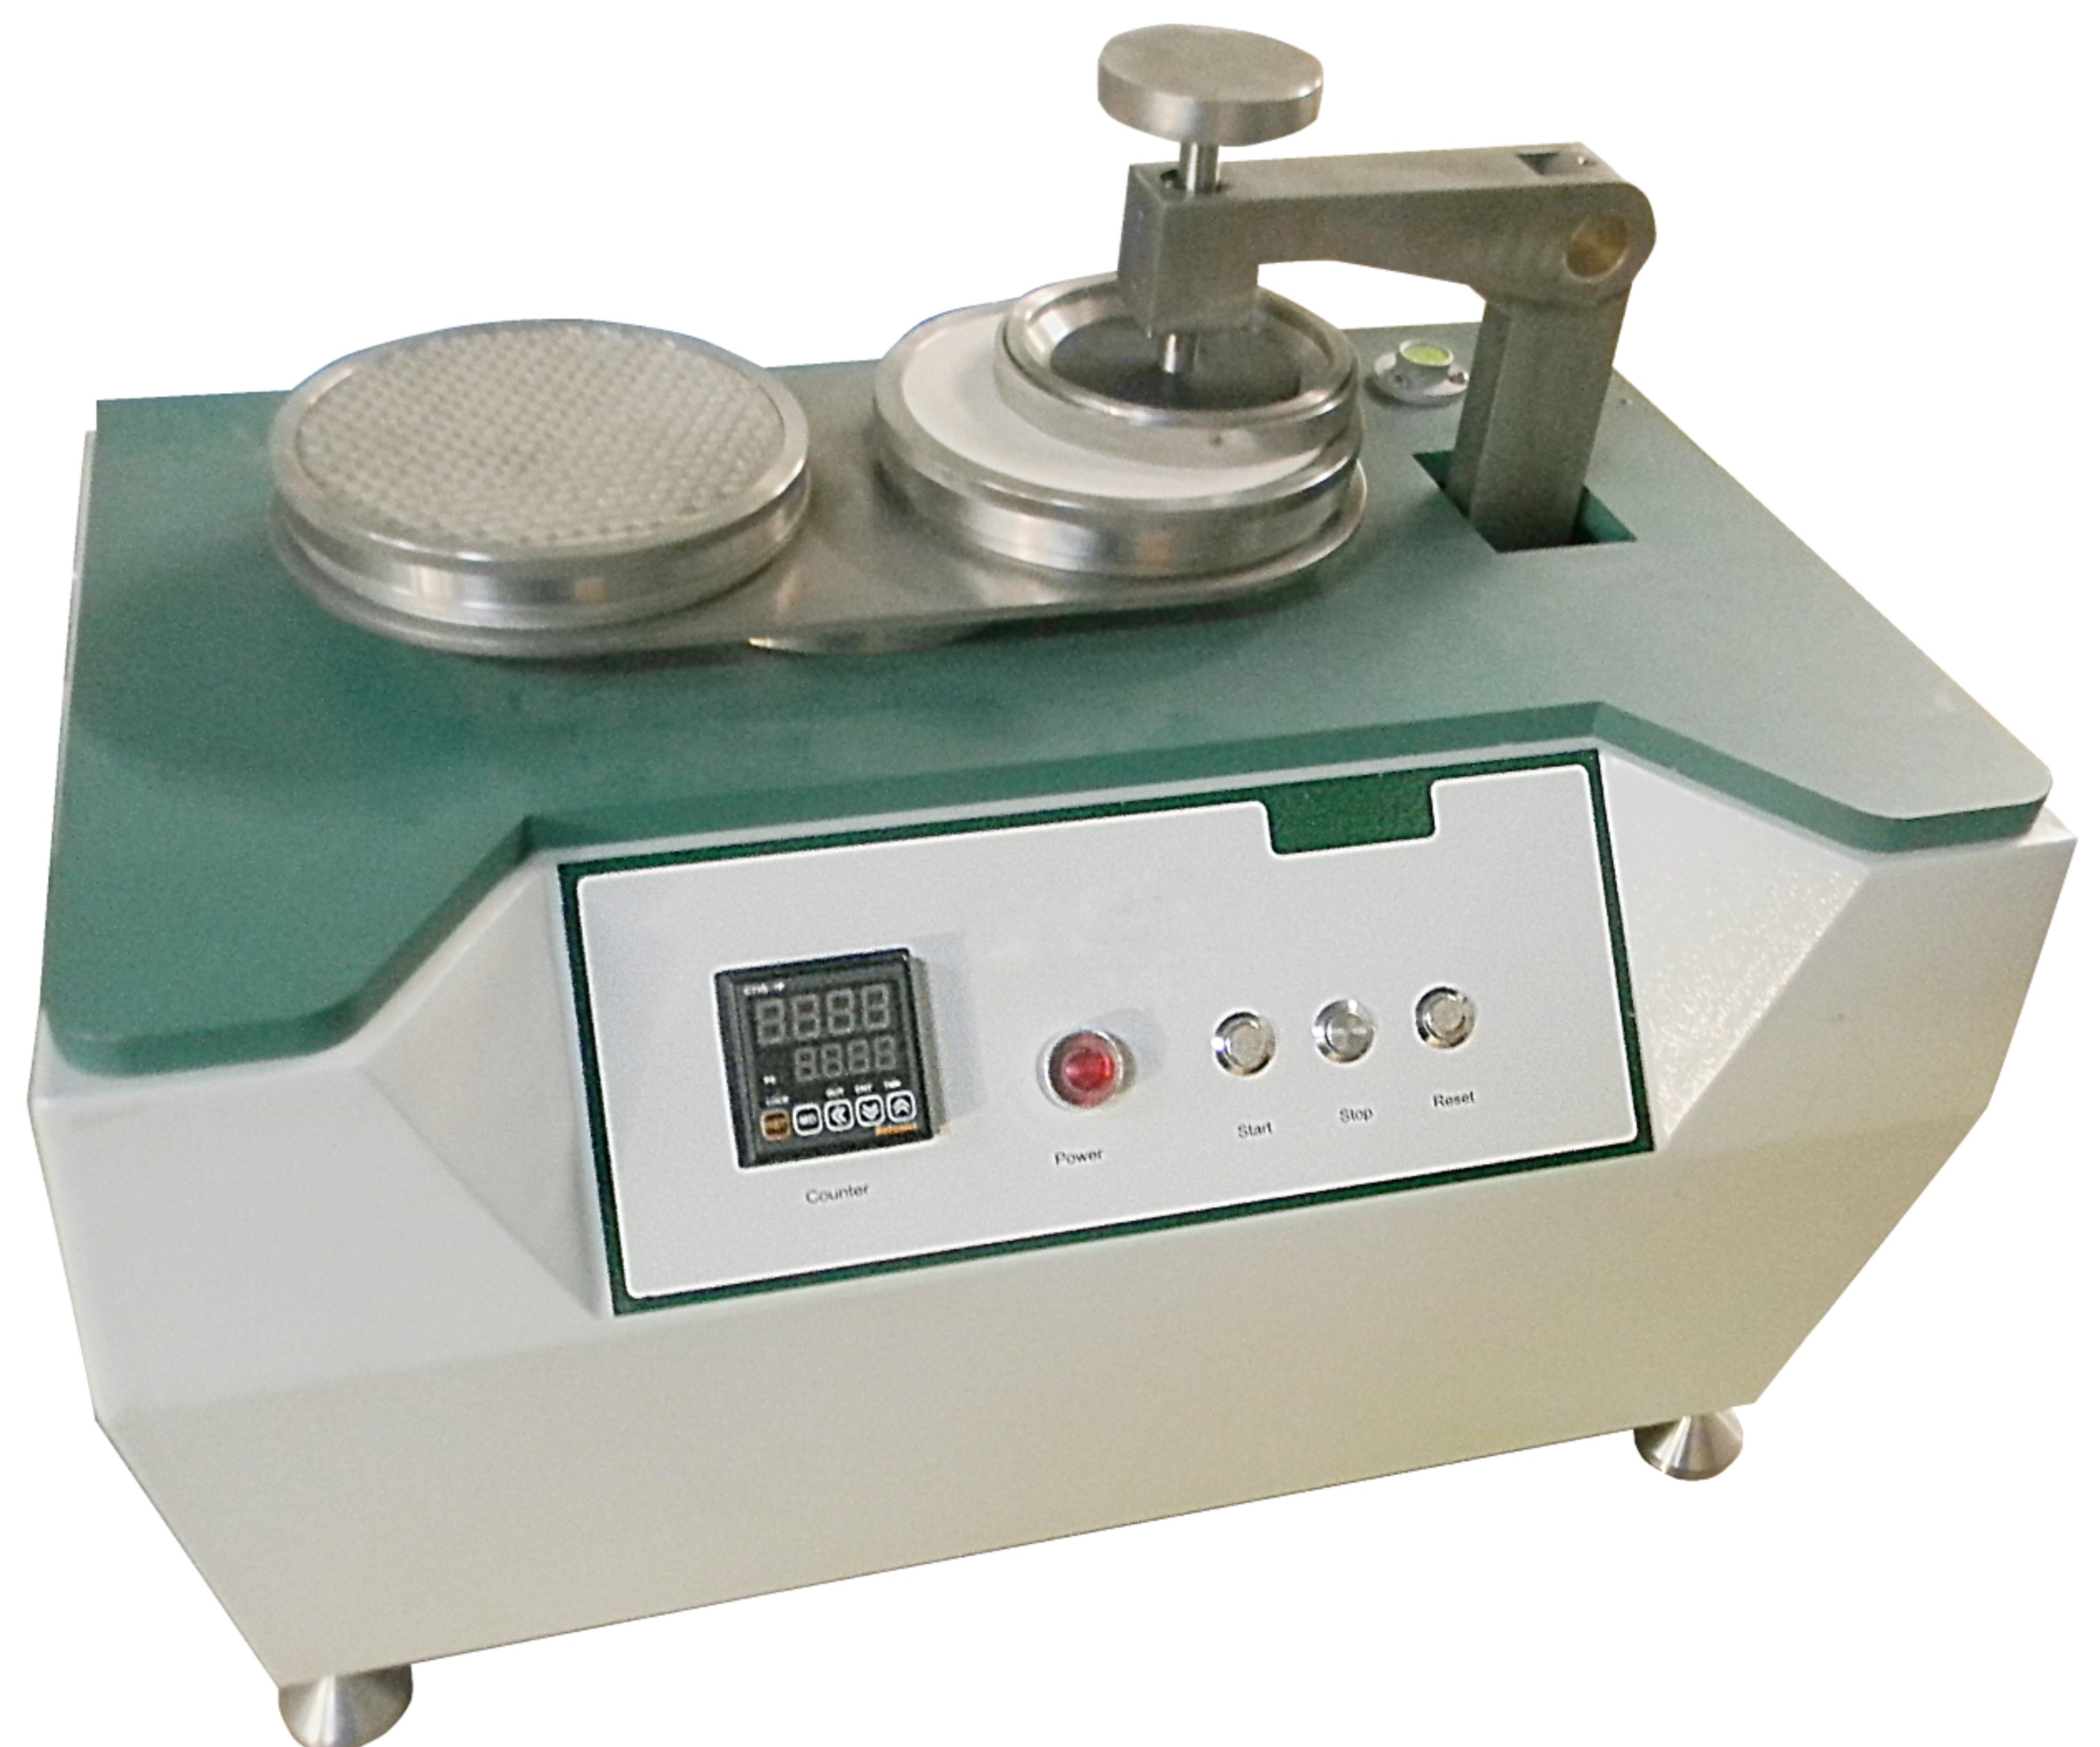 Circular Locus Pilling Test machine